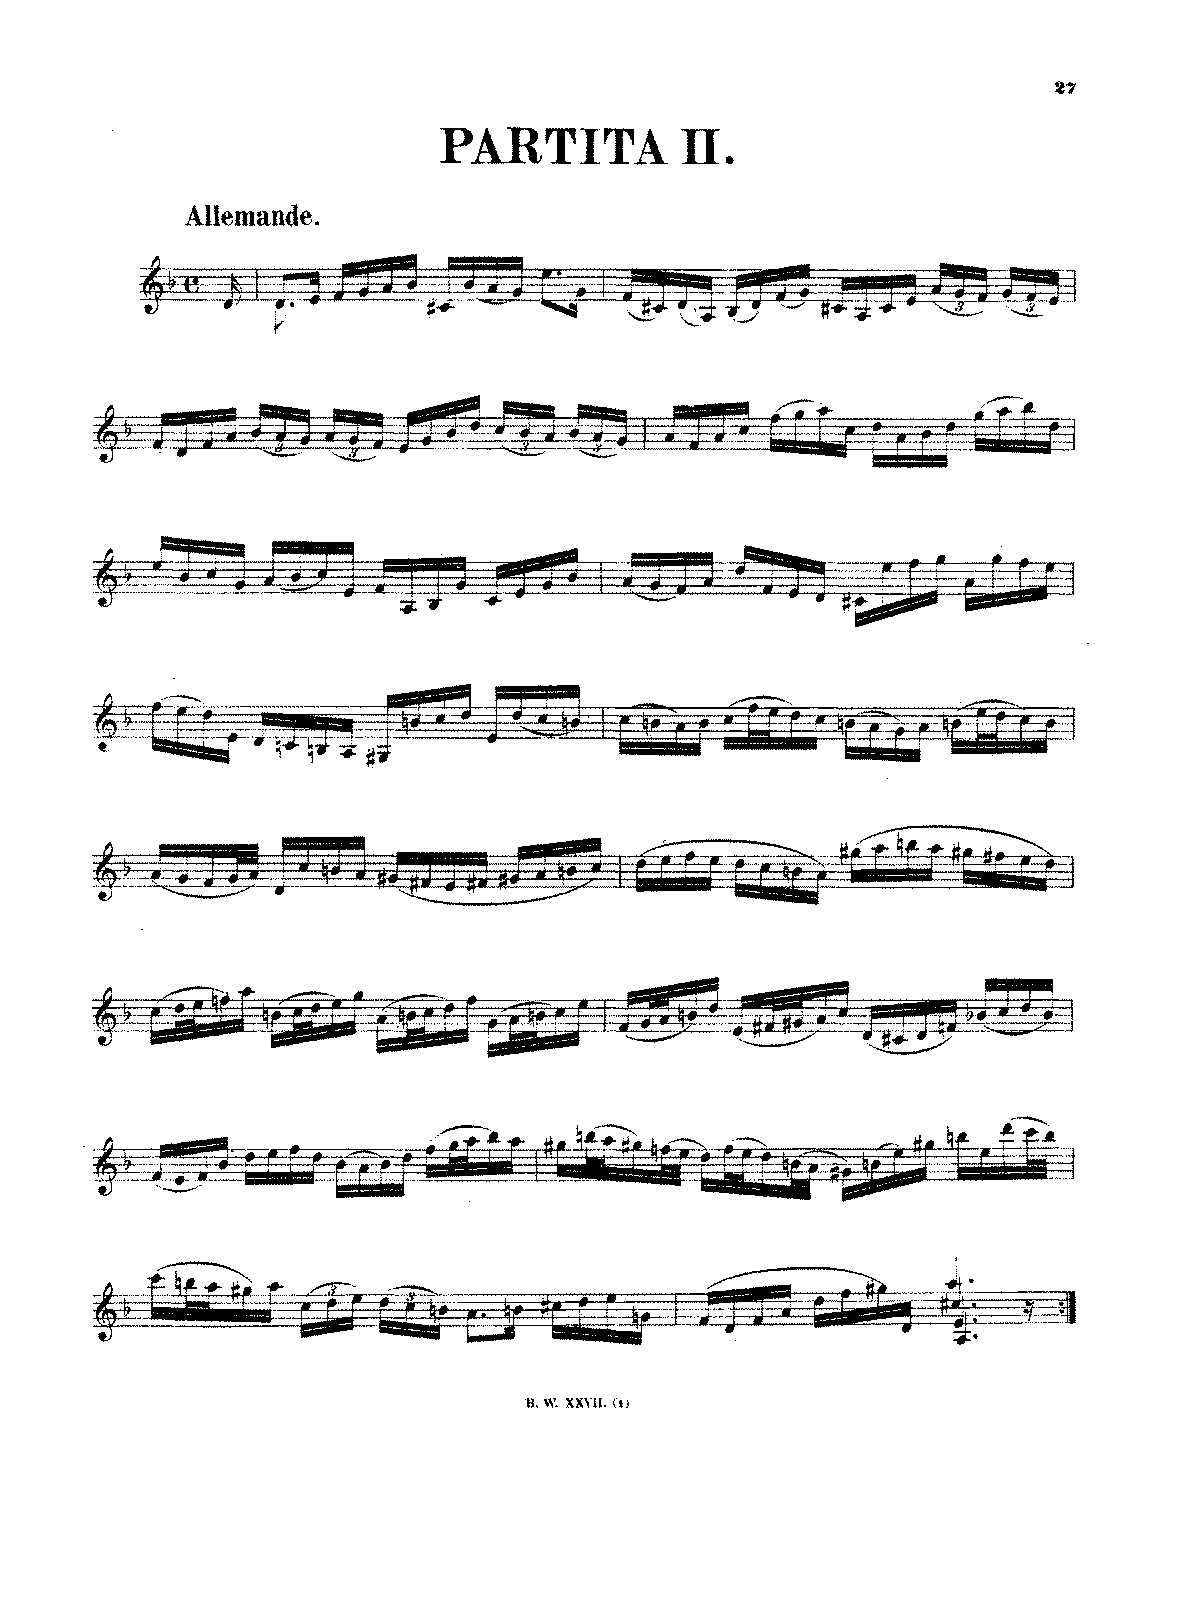 Violin Partita No 2 in D minor, BWV 1004 (Bach, Johann